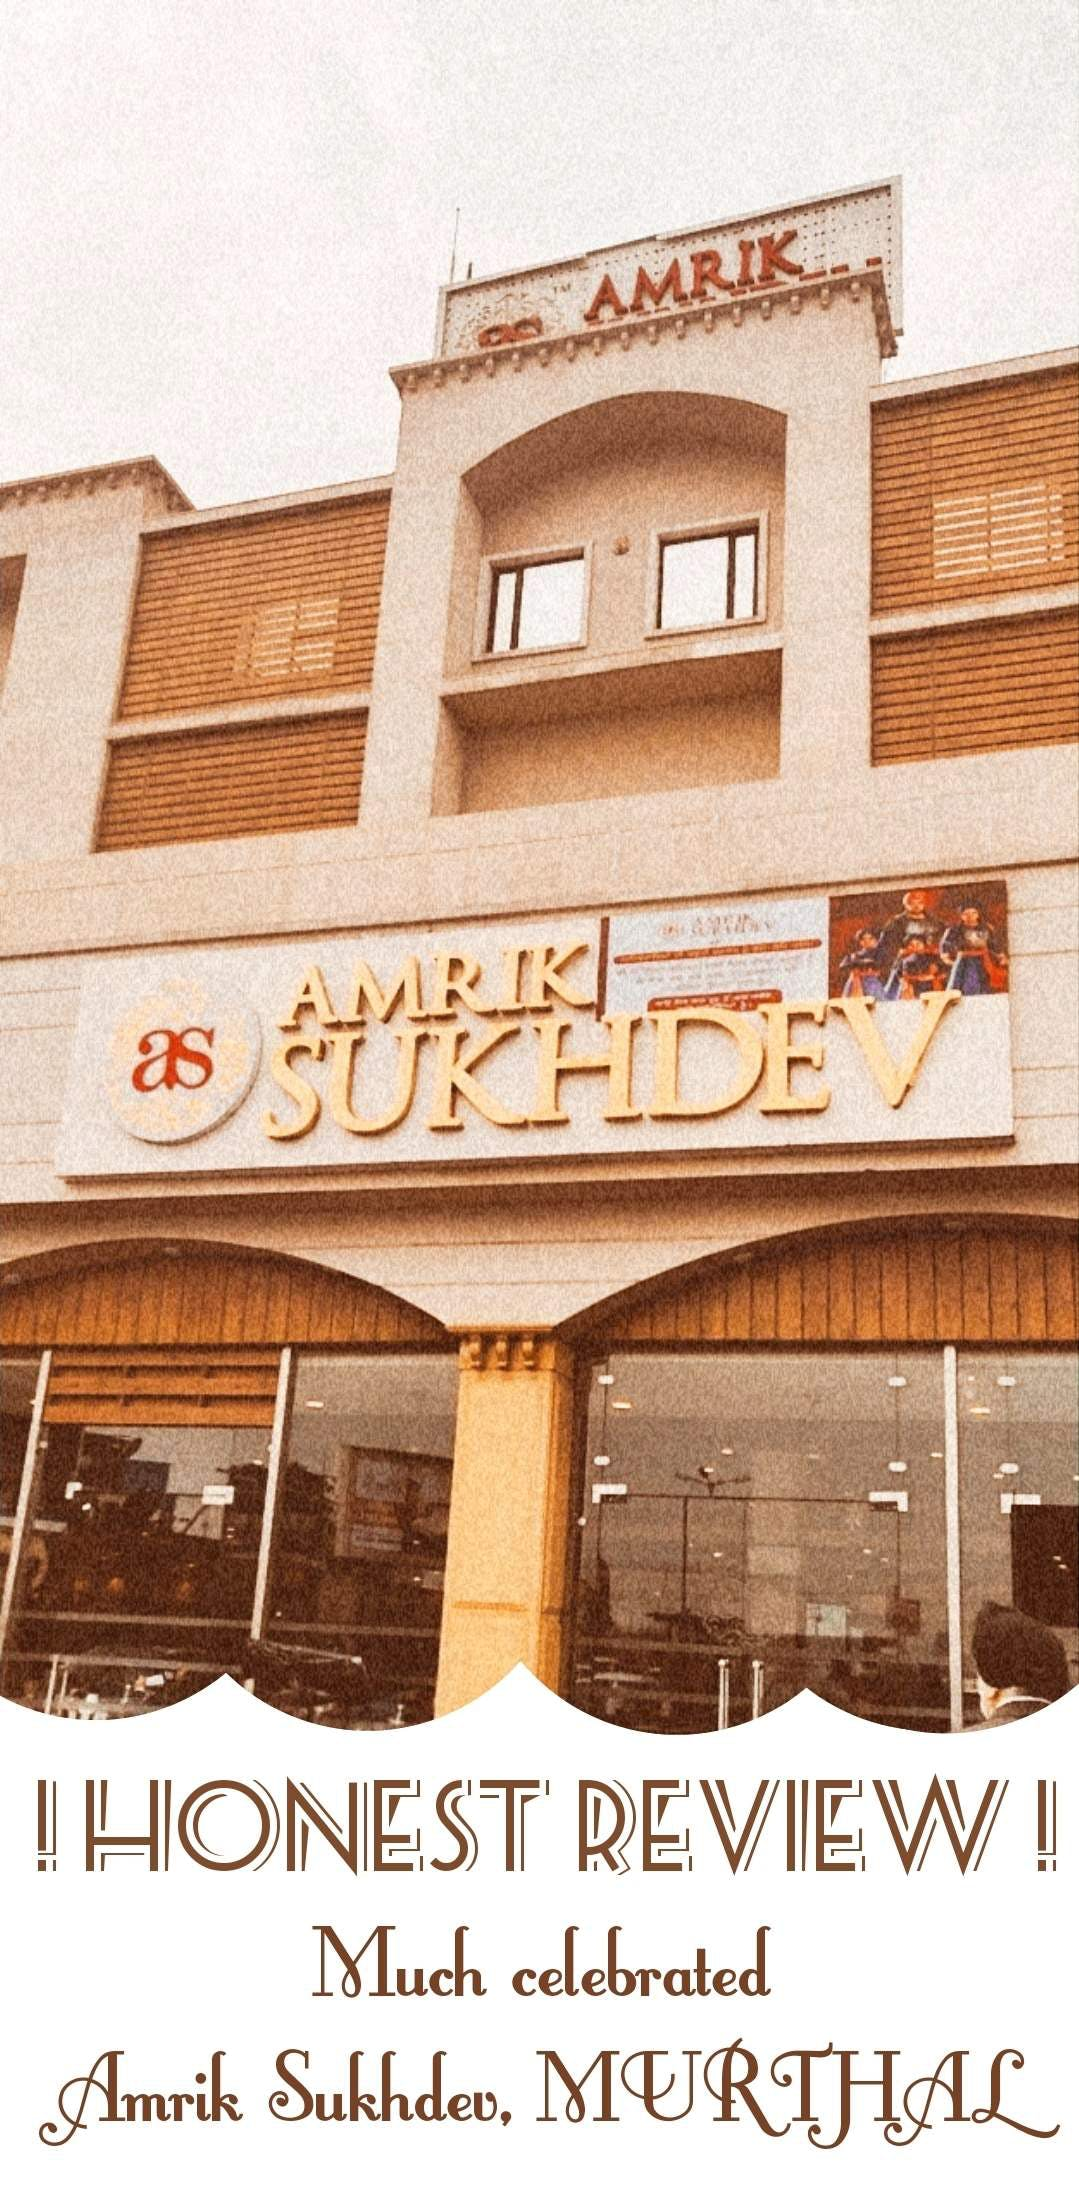 Honest Review Of The Most Celebrated Amrik Sukhdev, Murthal